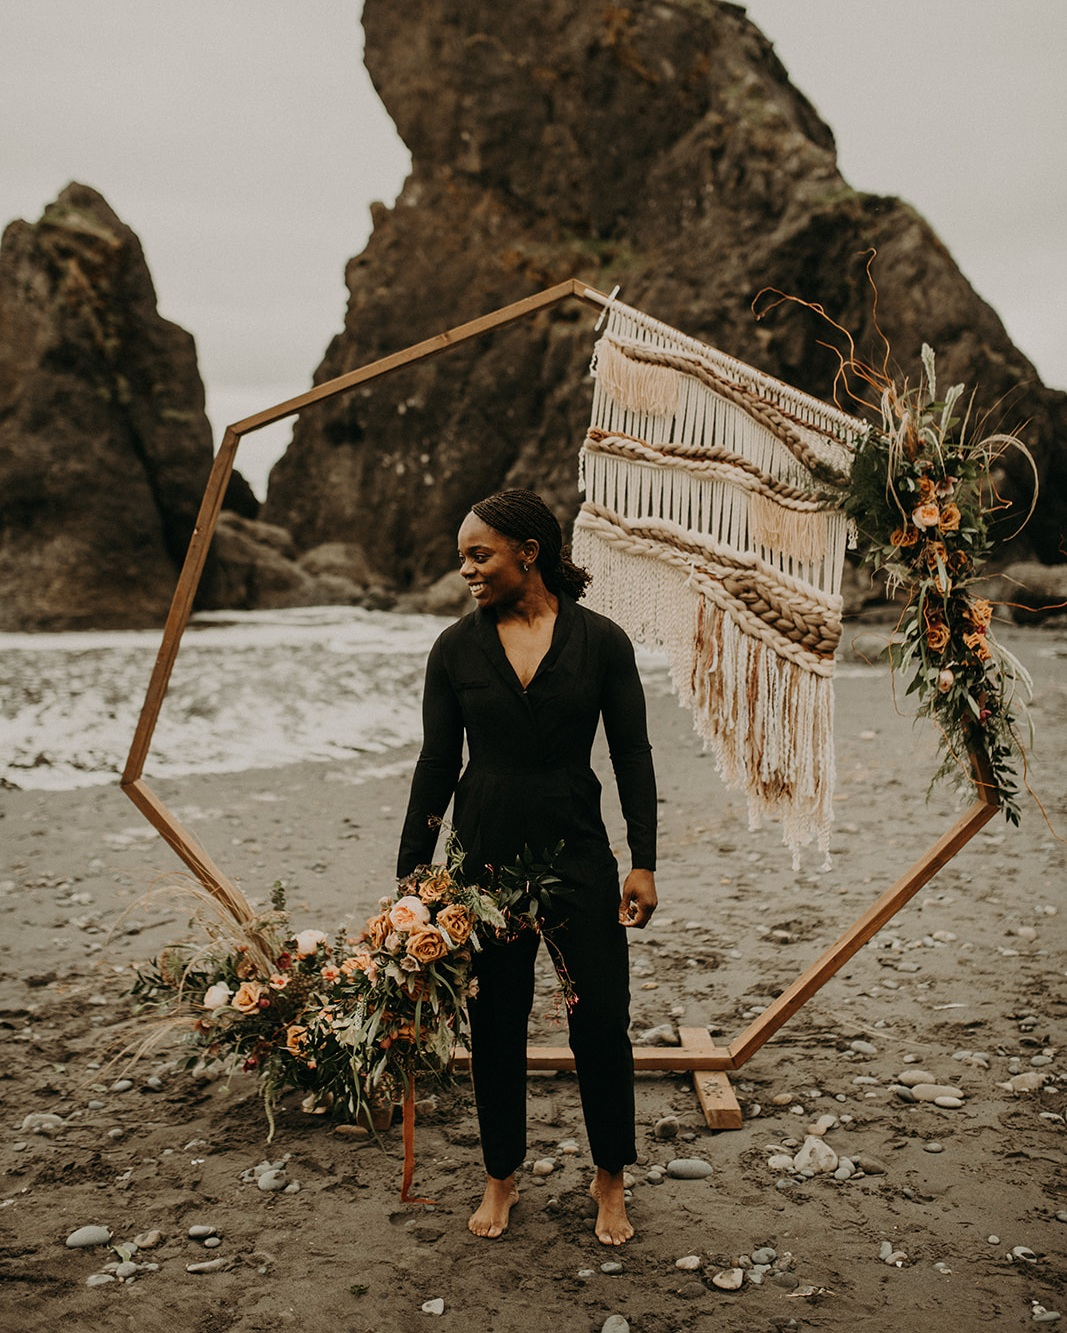 Ruby_Beach_Styled_Elopement_-_Run_Away_with_Me_Elopement_Collective_-_Kamra_Fuller_Photography_-_Portraits-7.jpg